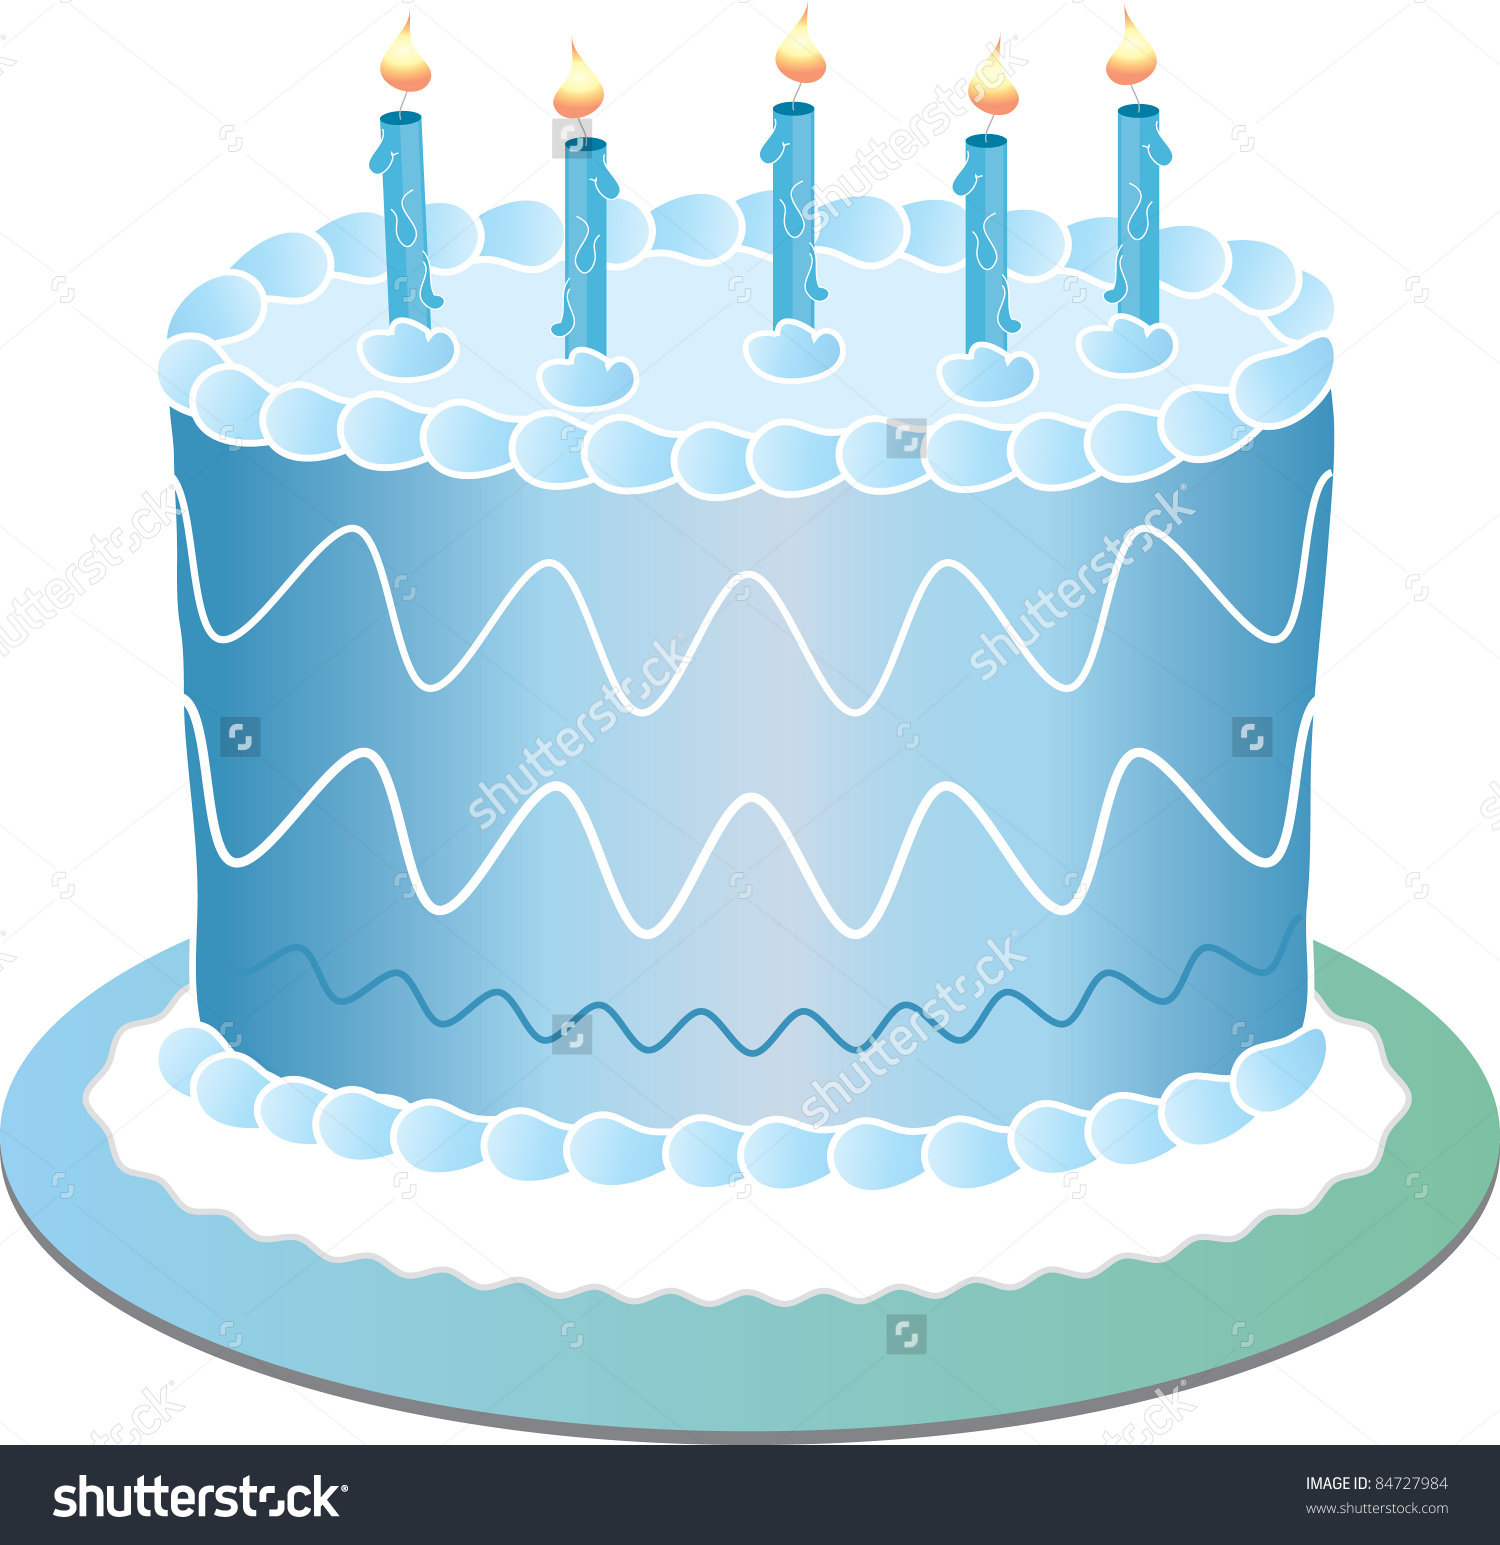 Blue birthday cake clip art image free Clip Art Illustration Blue Birthday Cake Stock Illustration ... image free